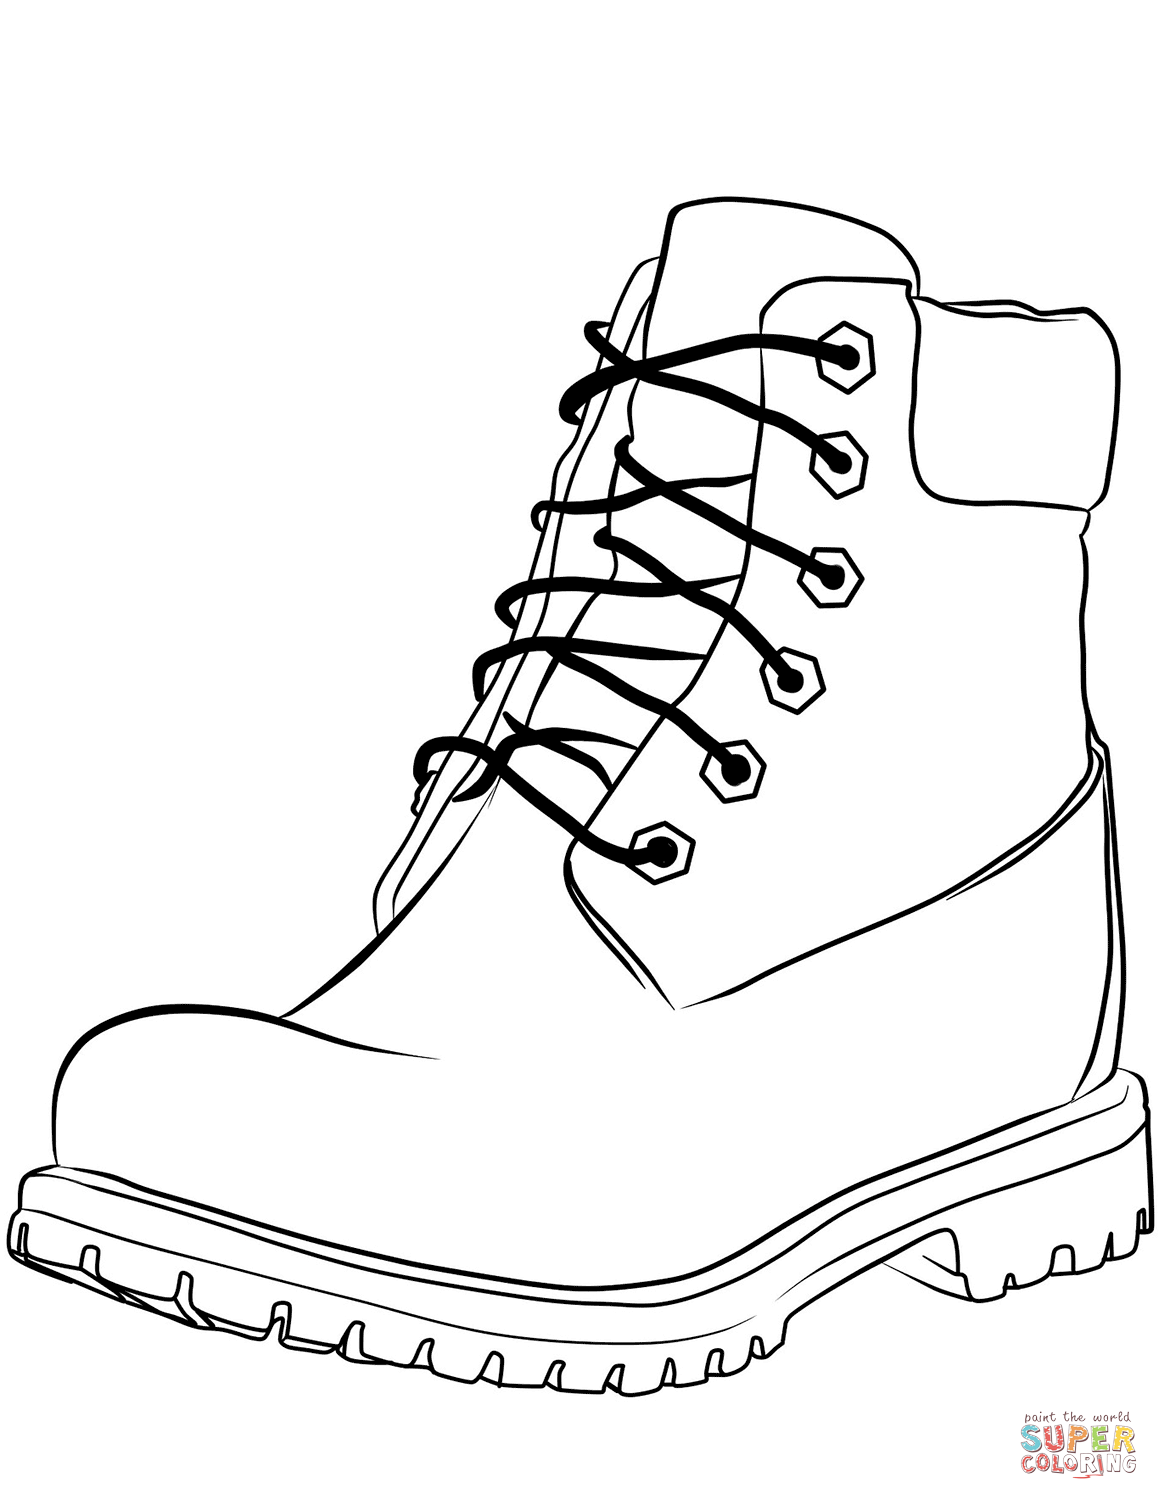 Boot clipart work boot, Boot work boot Transparent FREE for download.